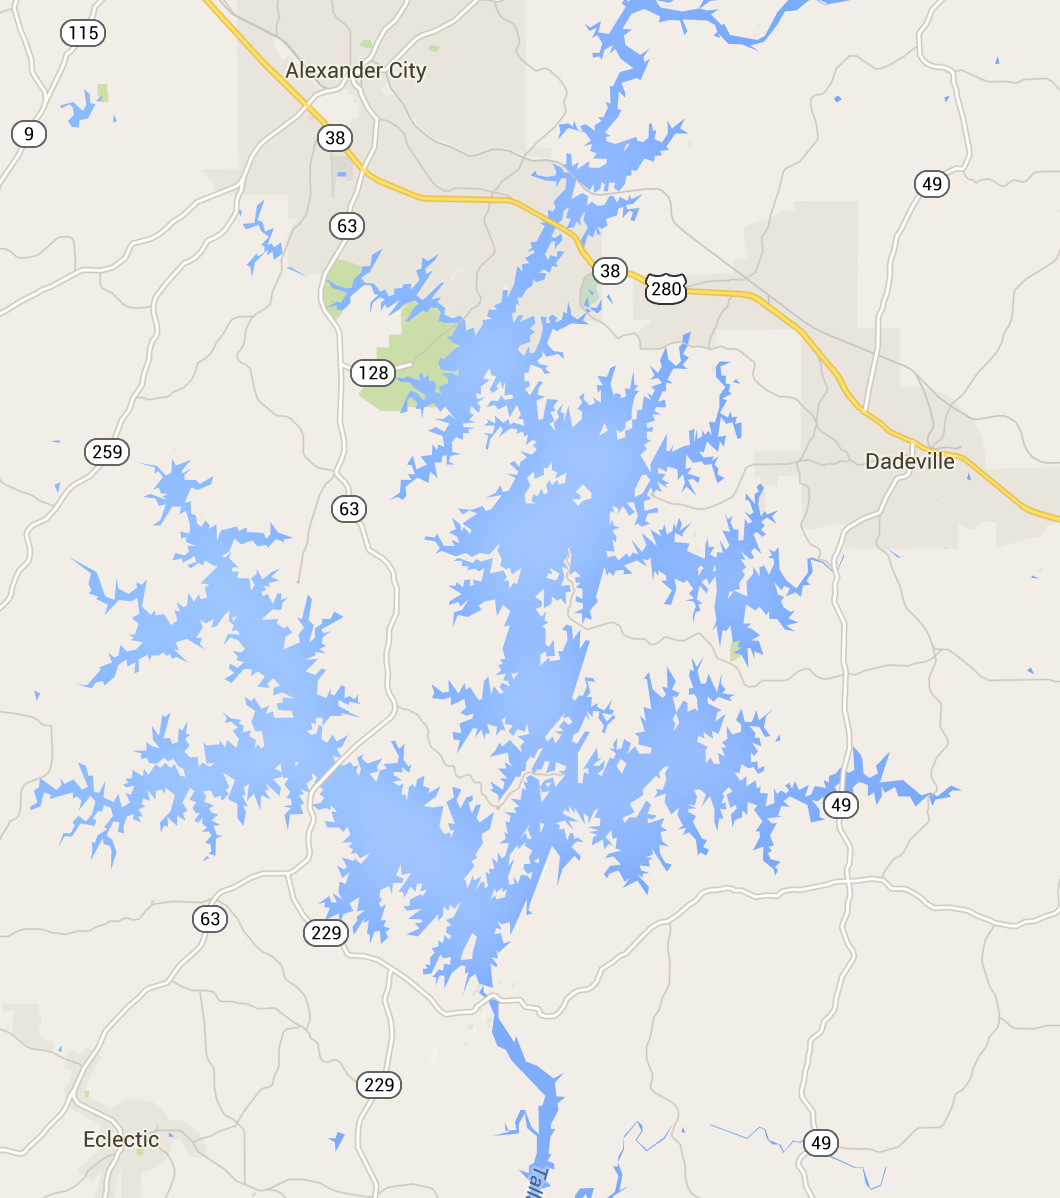 Major towns around Lake Martin